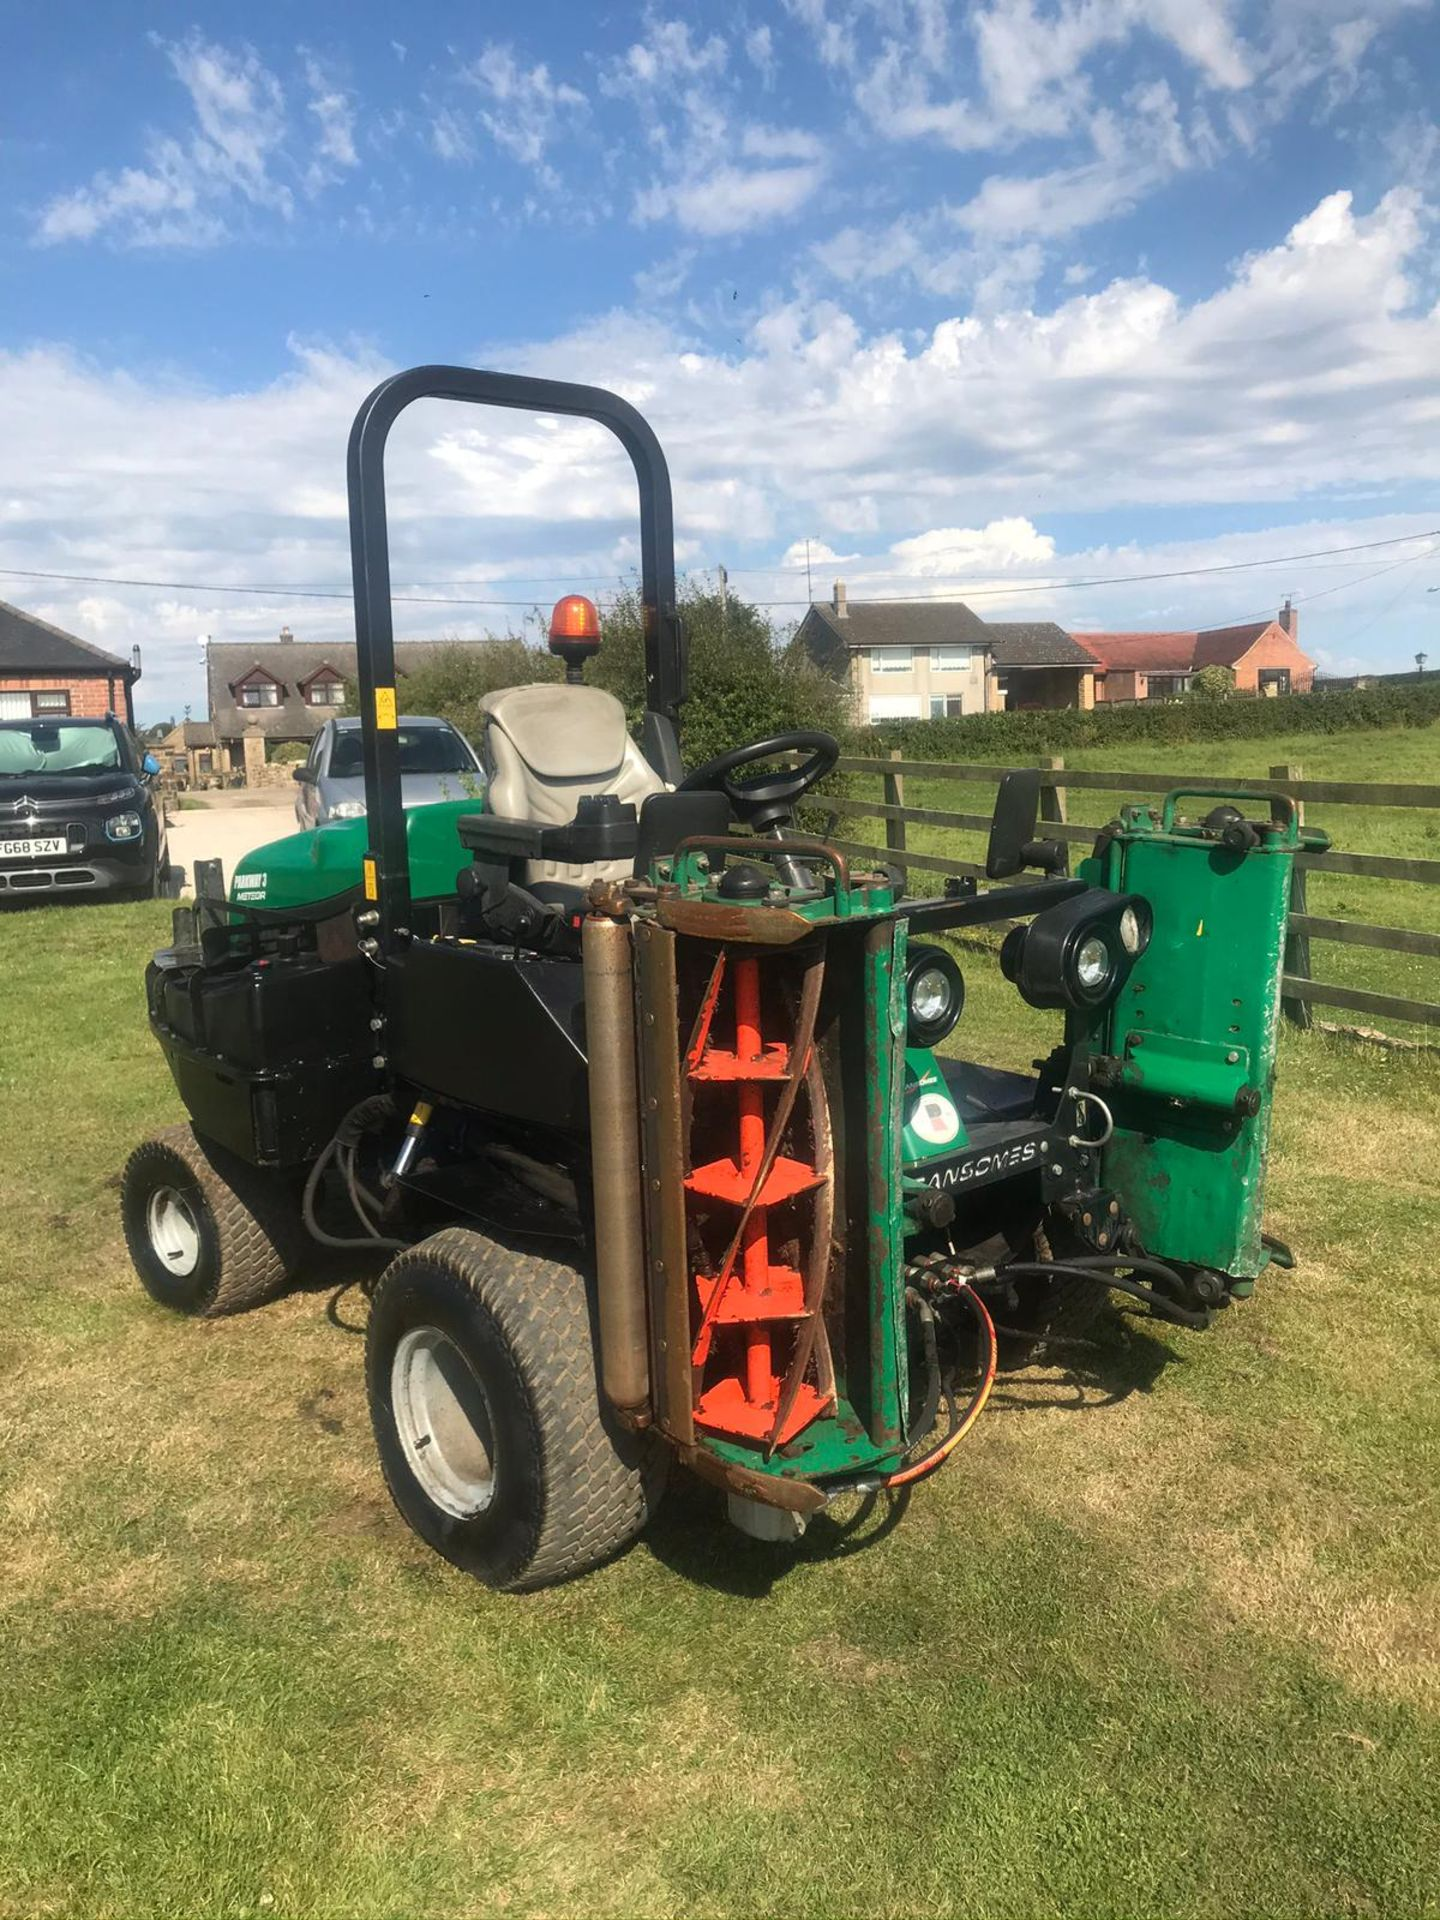 2013 RANSOMES PARKWAY 3, RUNS, DRIVES AND CUTS, ROAD LEGAL *PLUS VAT* - Image 2 of 4